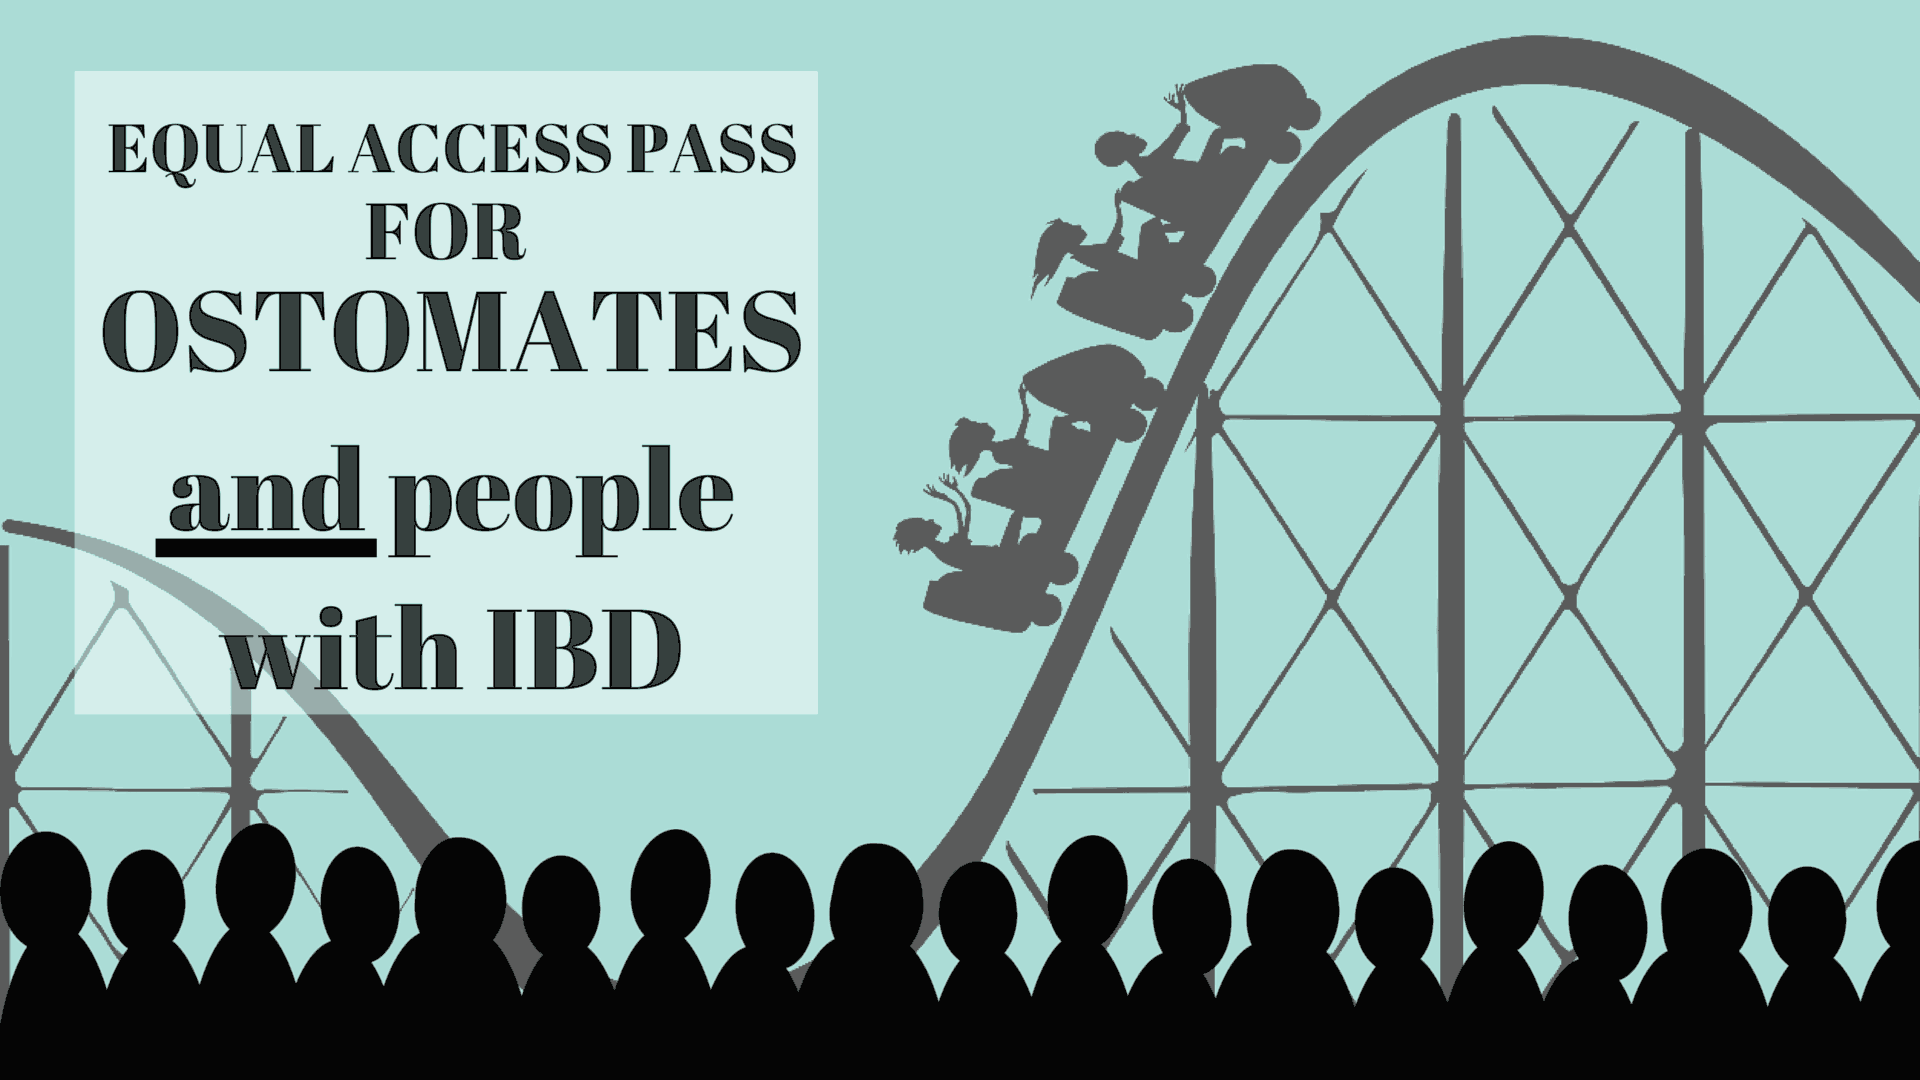 EQUAL ACCESS PASS FOR OSTOMATES and ibd